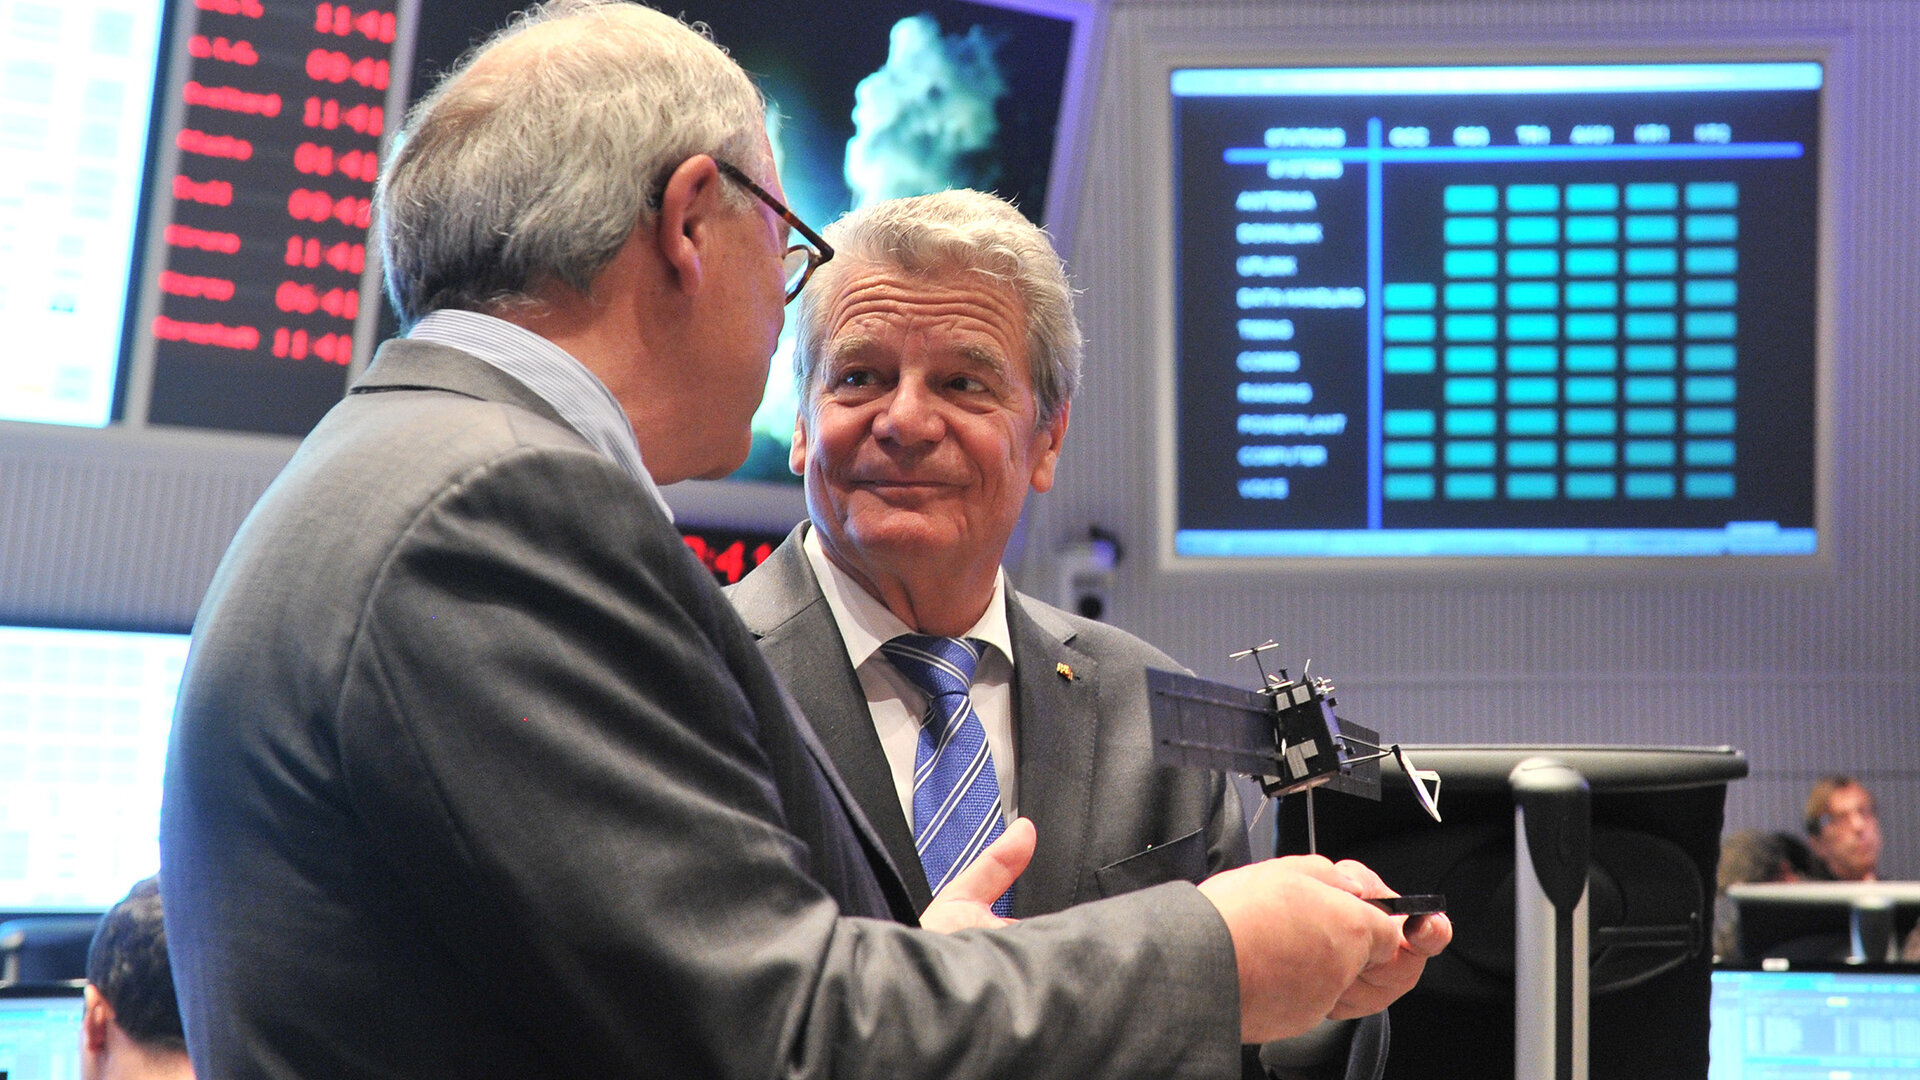 ESA Director General Dordain briefs President Gauck on Rosetta